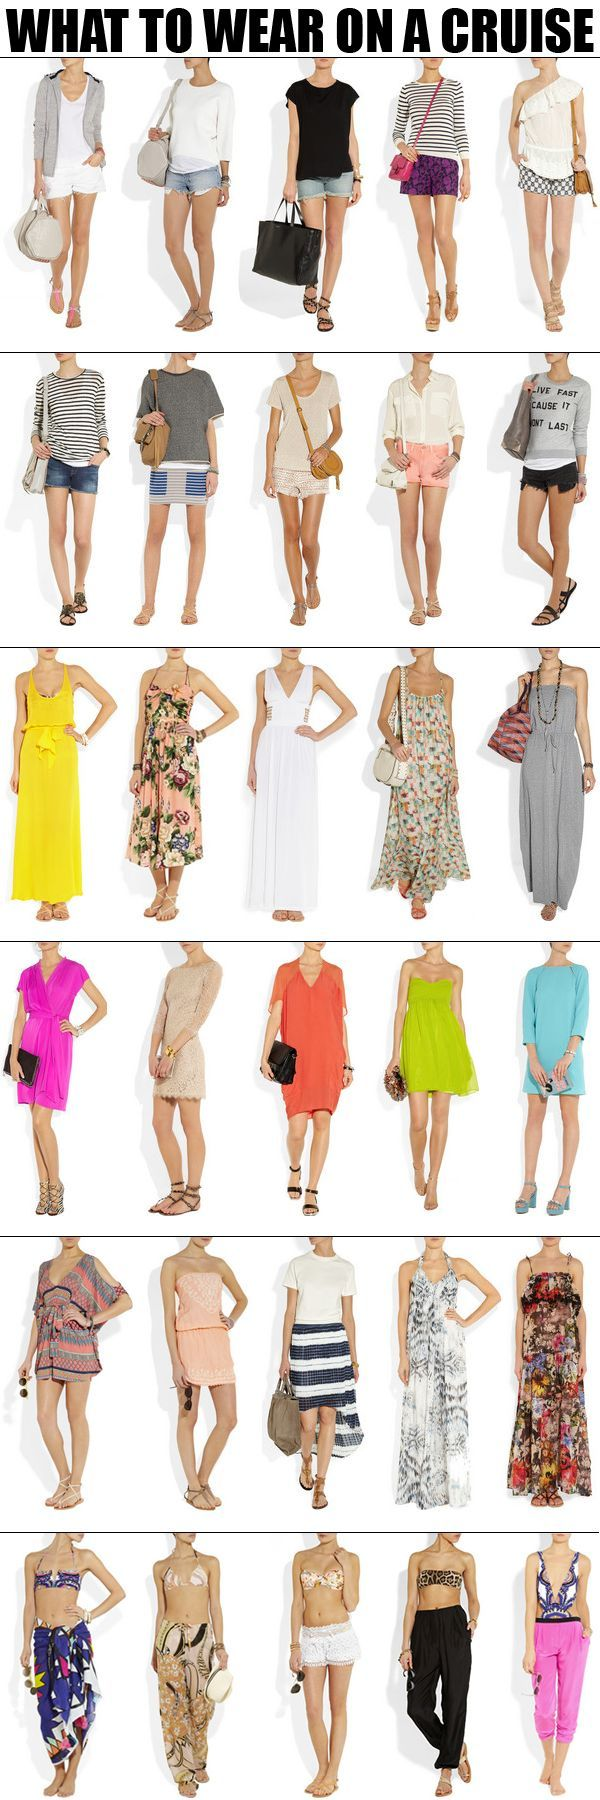 What To Wear On A Cruise- wish I had this for spring break.